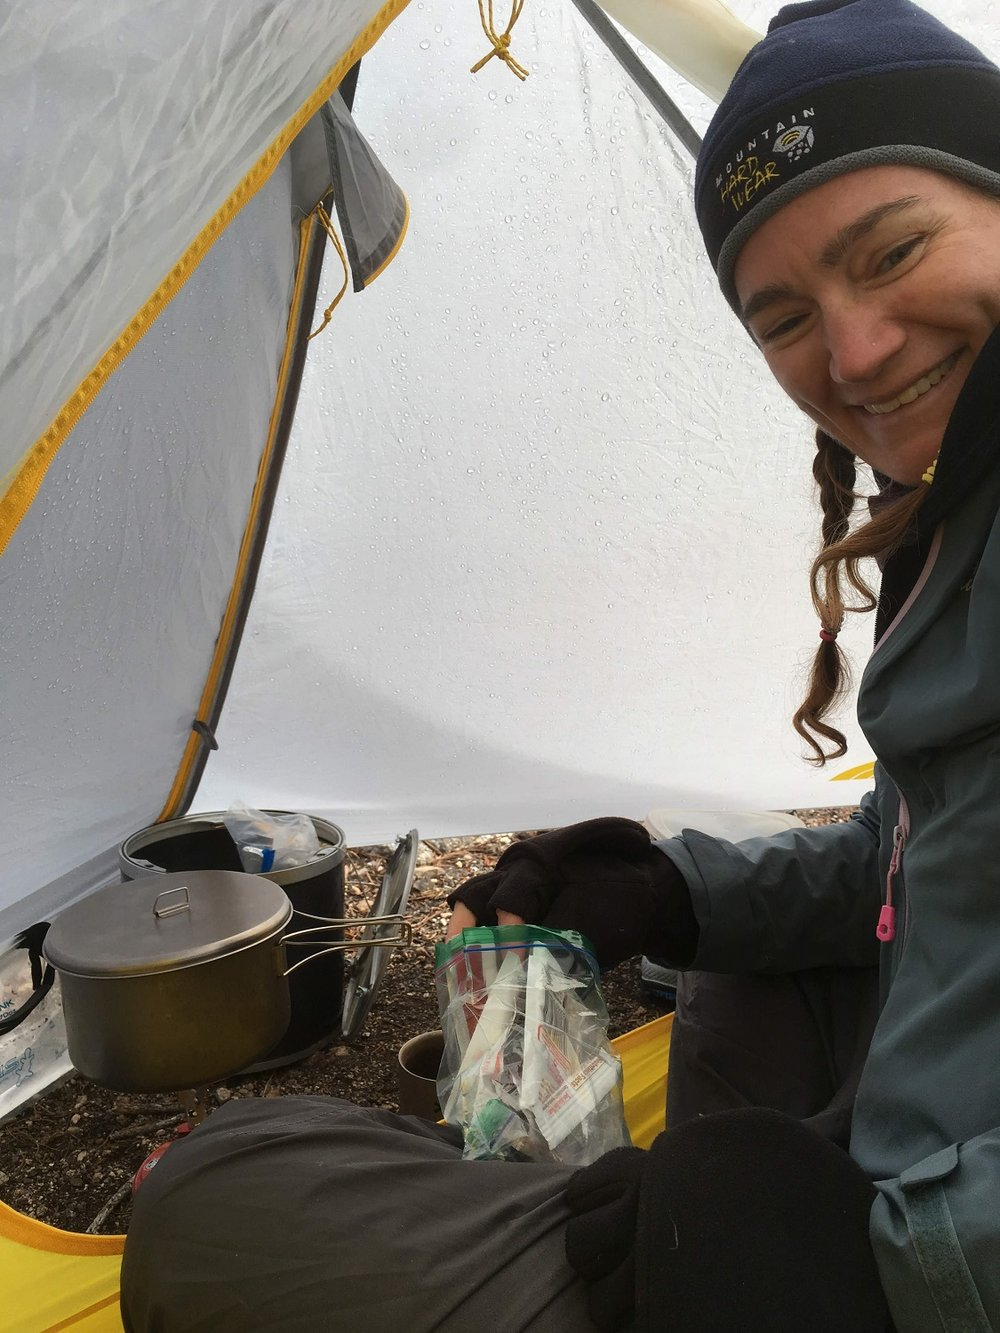 Danger: Never cook dinner in your tent. Unless it's storming.